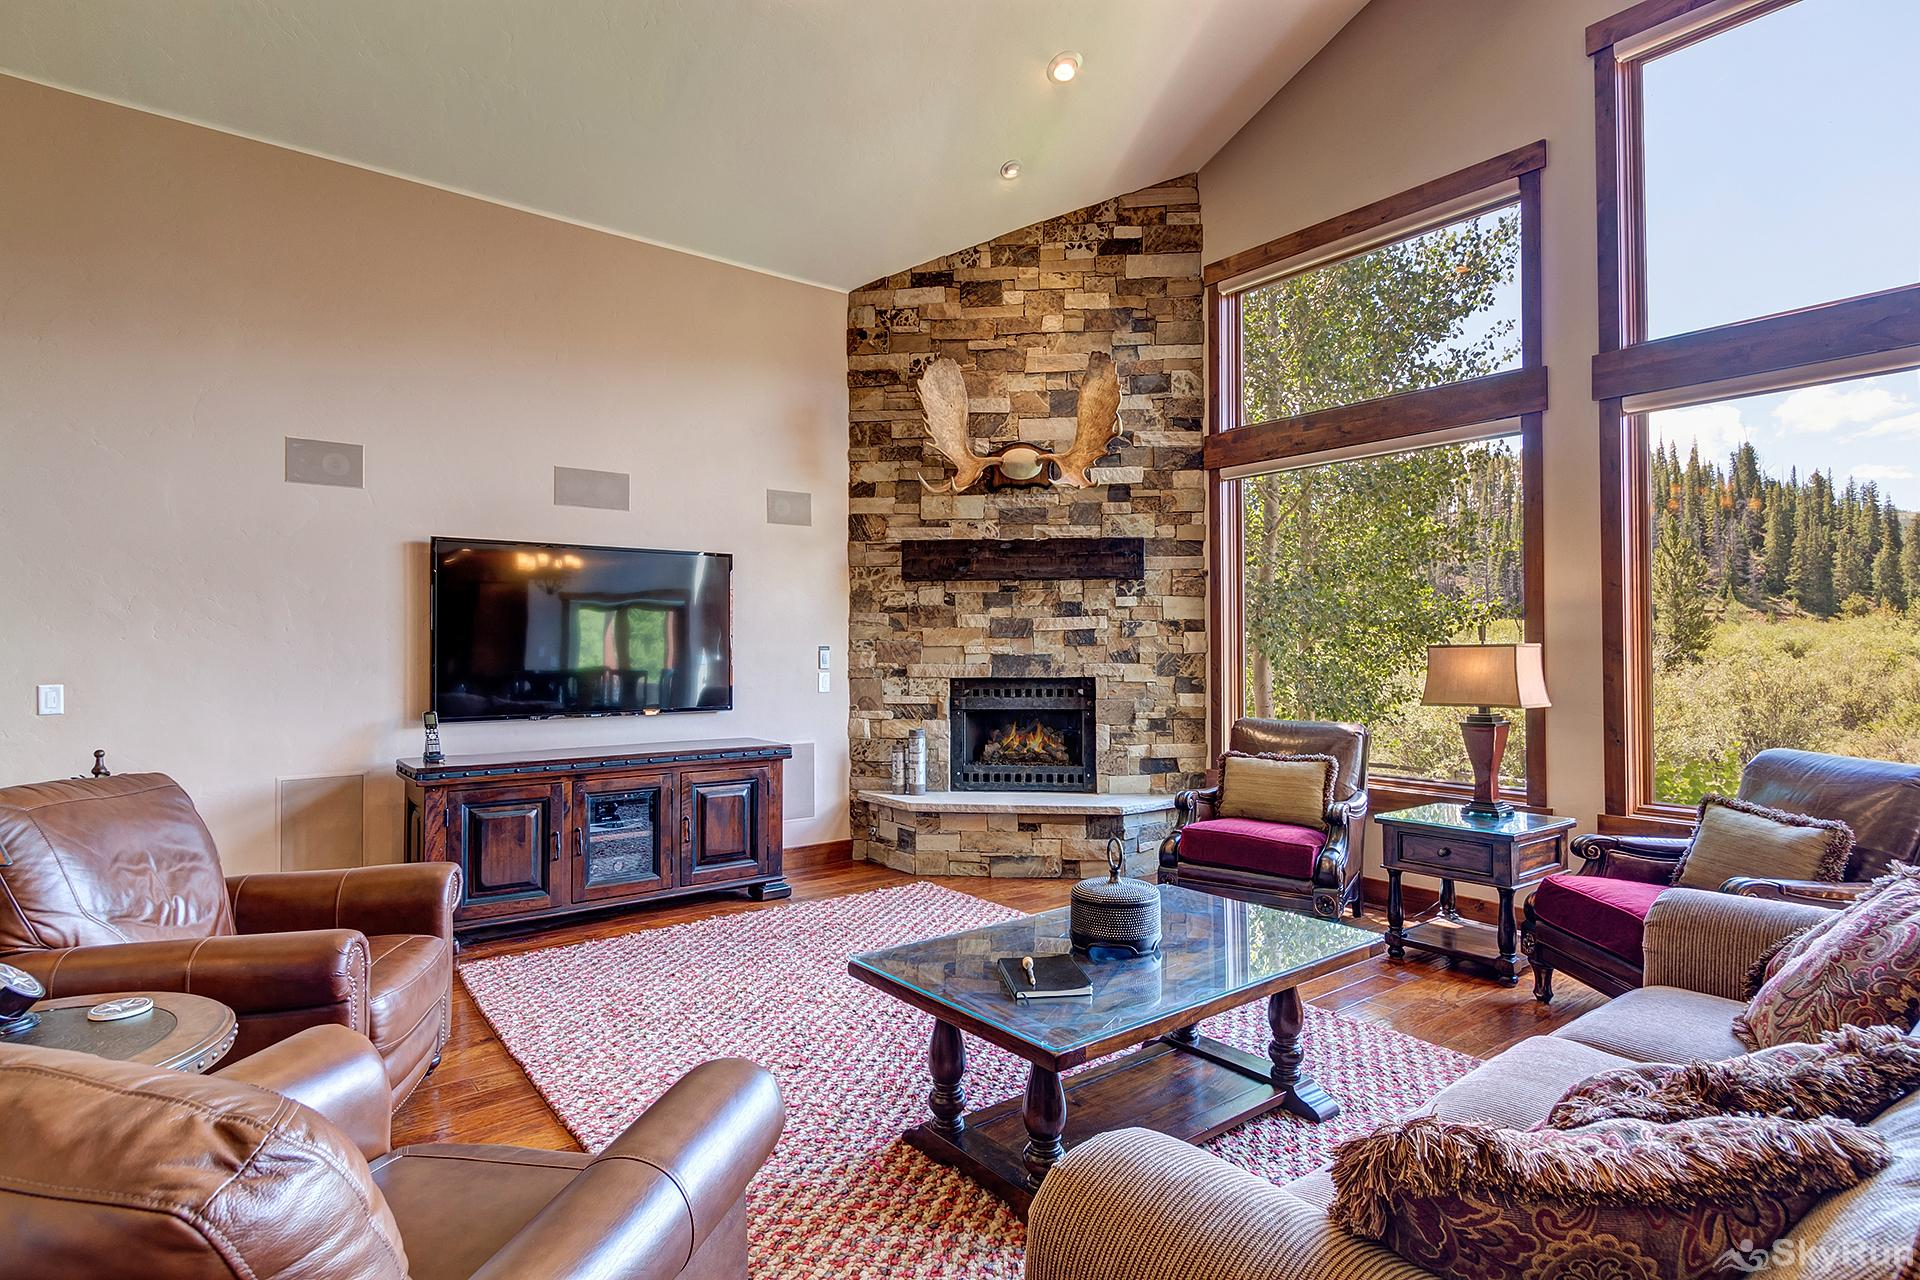 Swan River Retreat LIving room with floor-to-ceiling stone fireplace